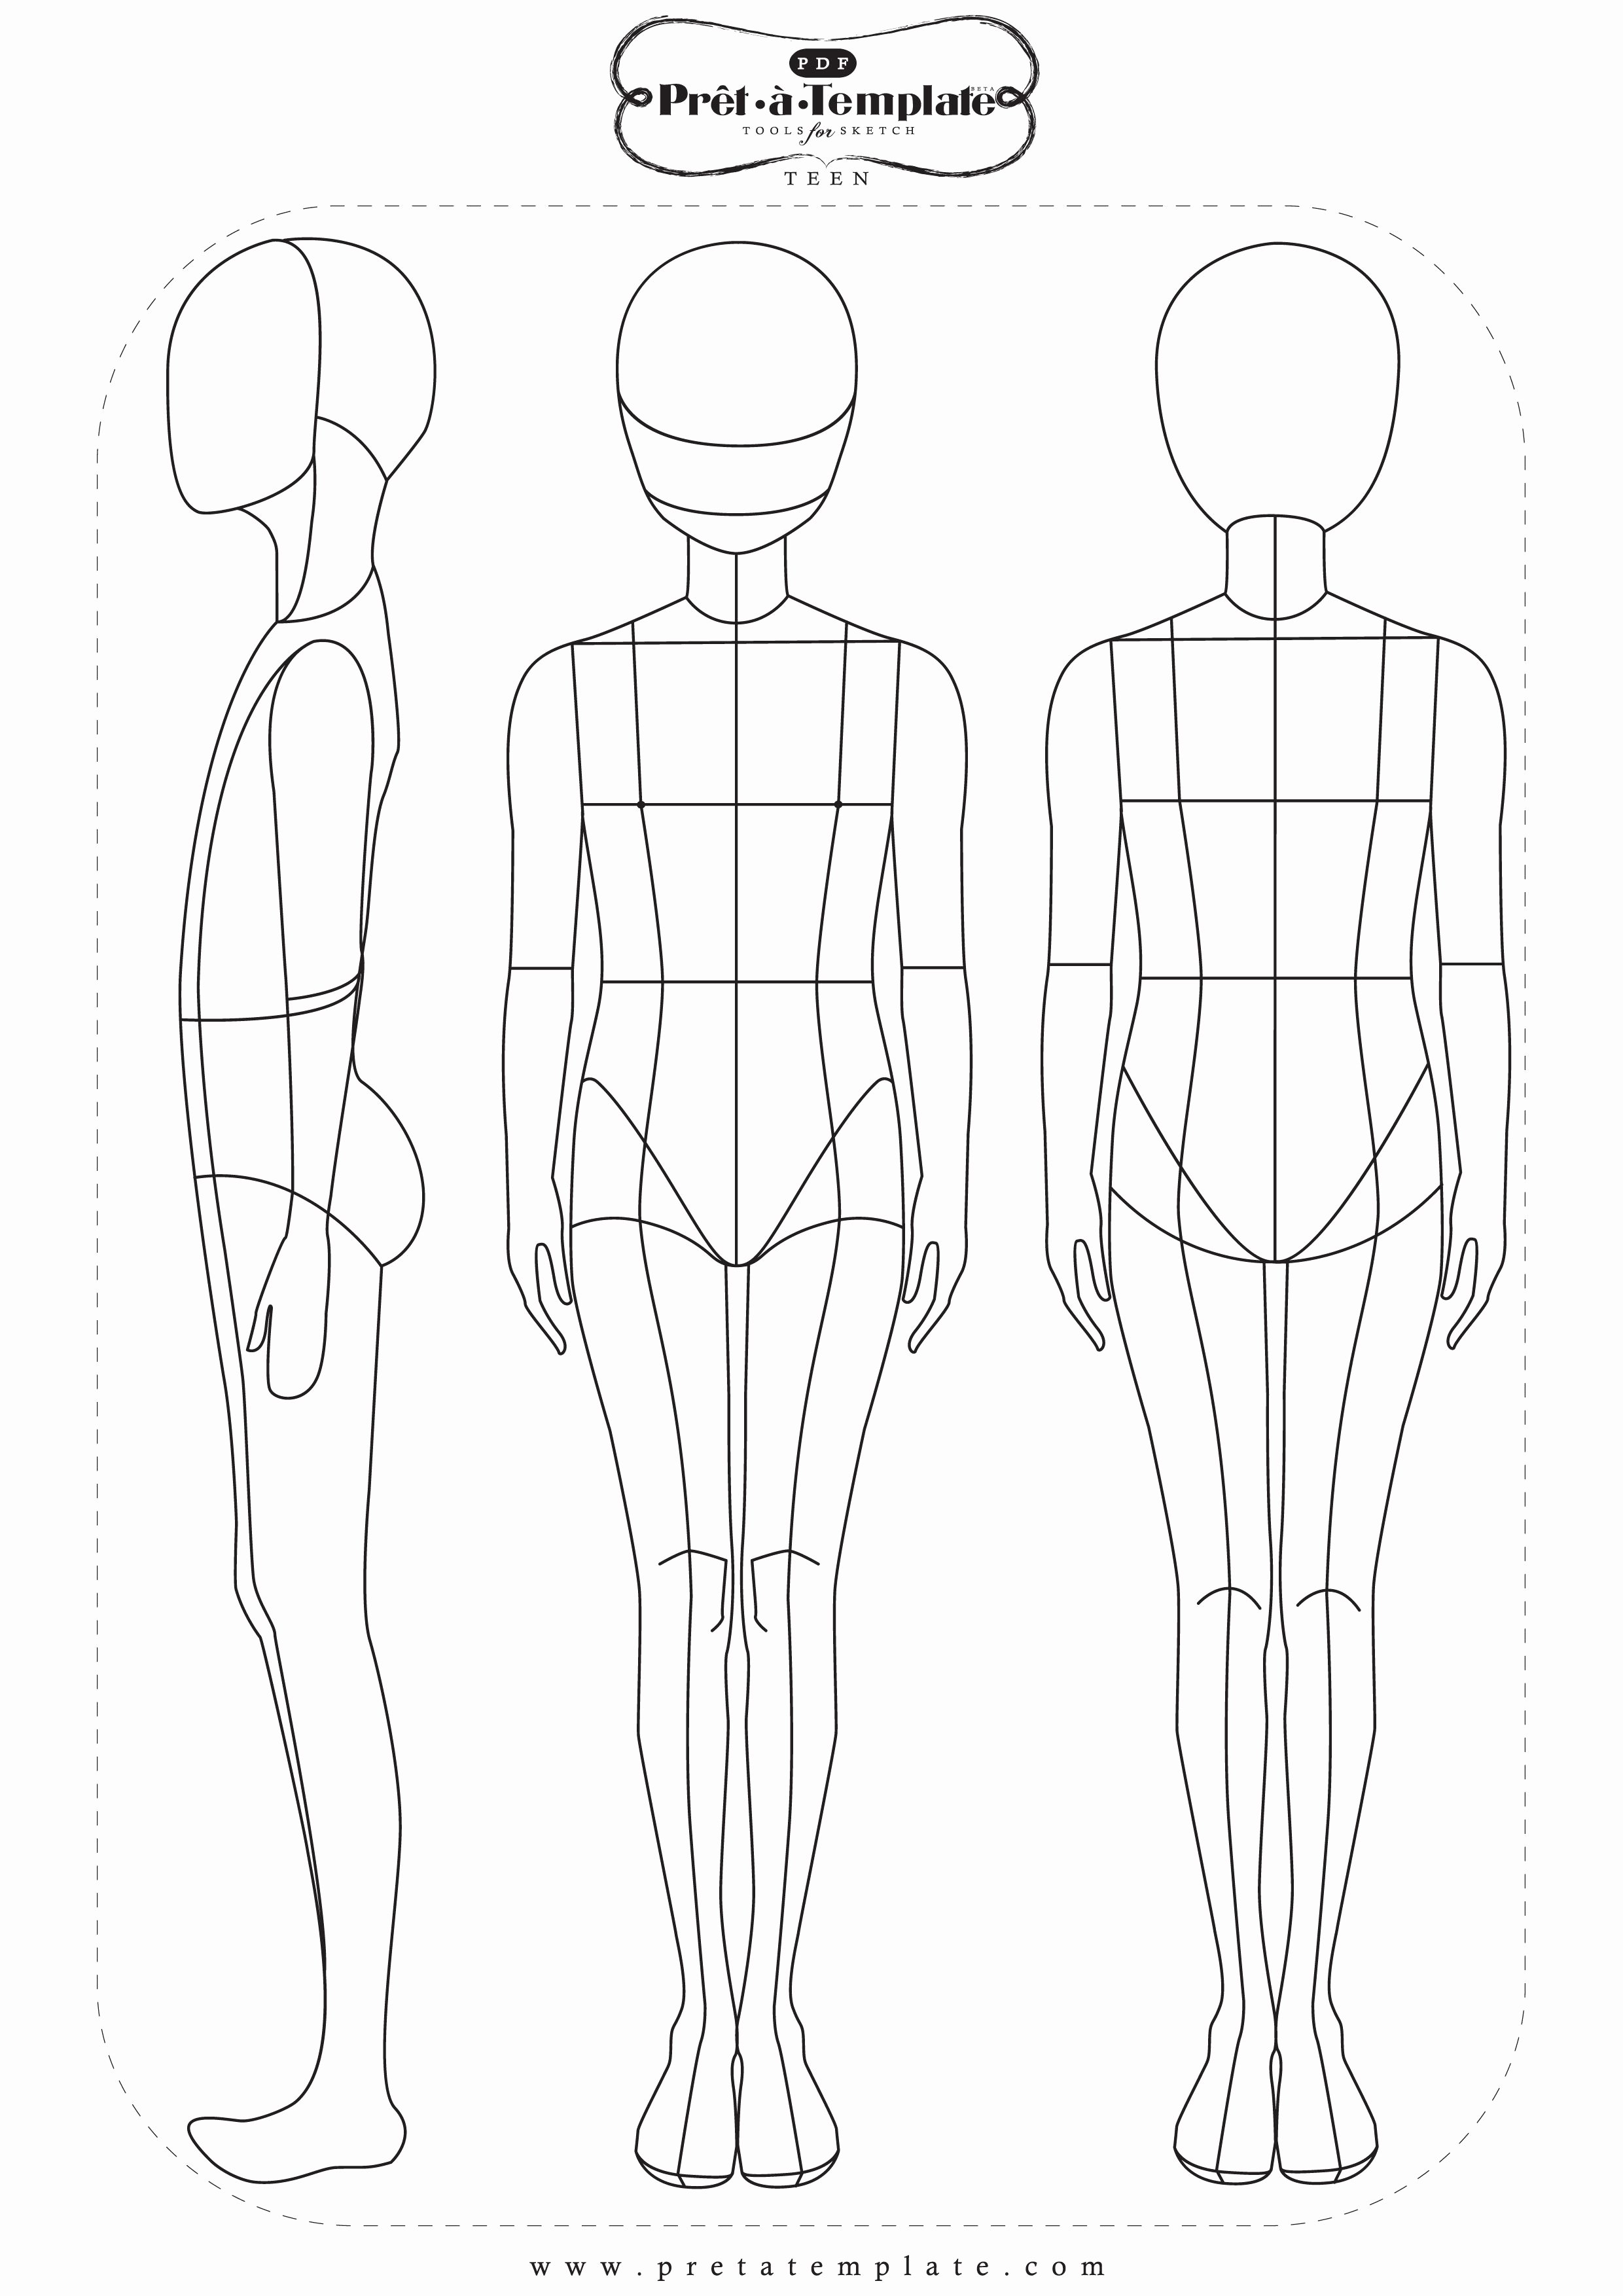 Body Drawing Template Beautiful Fashion Templates Fashion App Pret à Template Available